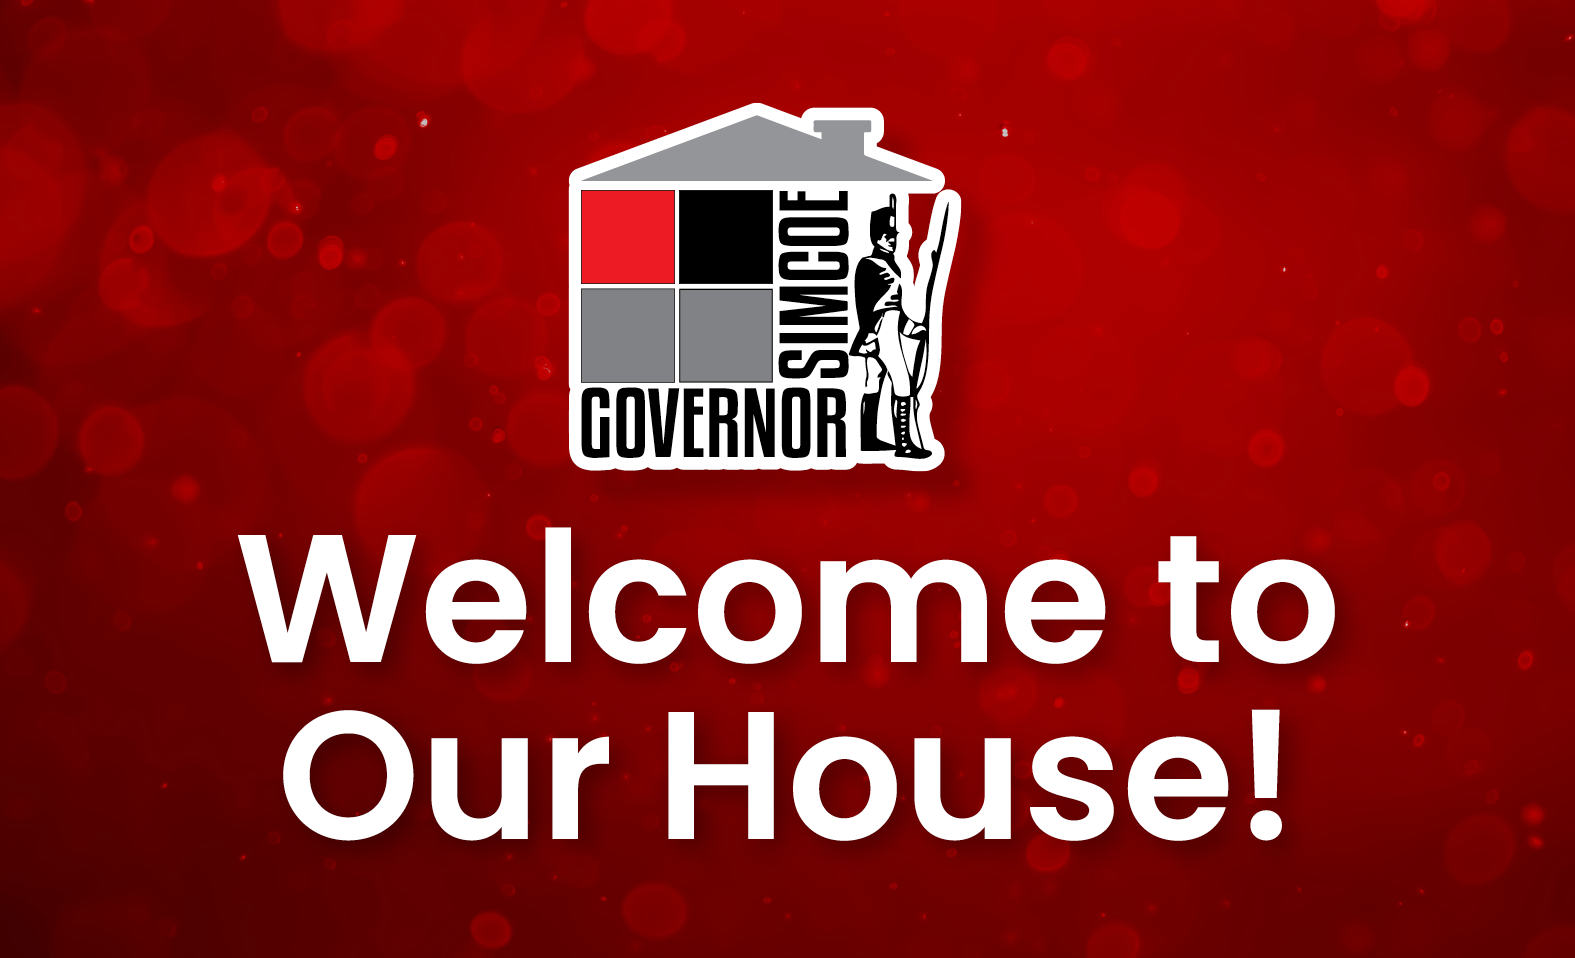 WelcometoOurHouse-Simcoe-Button